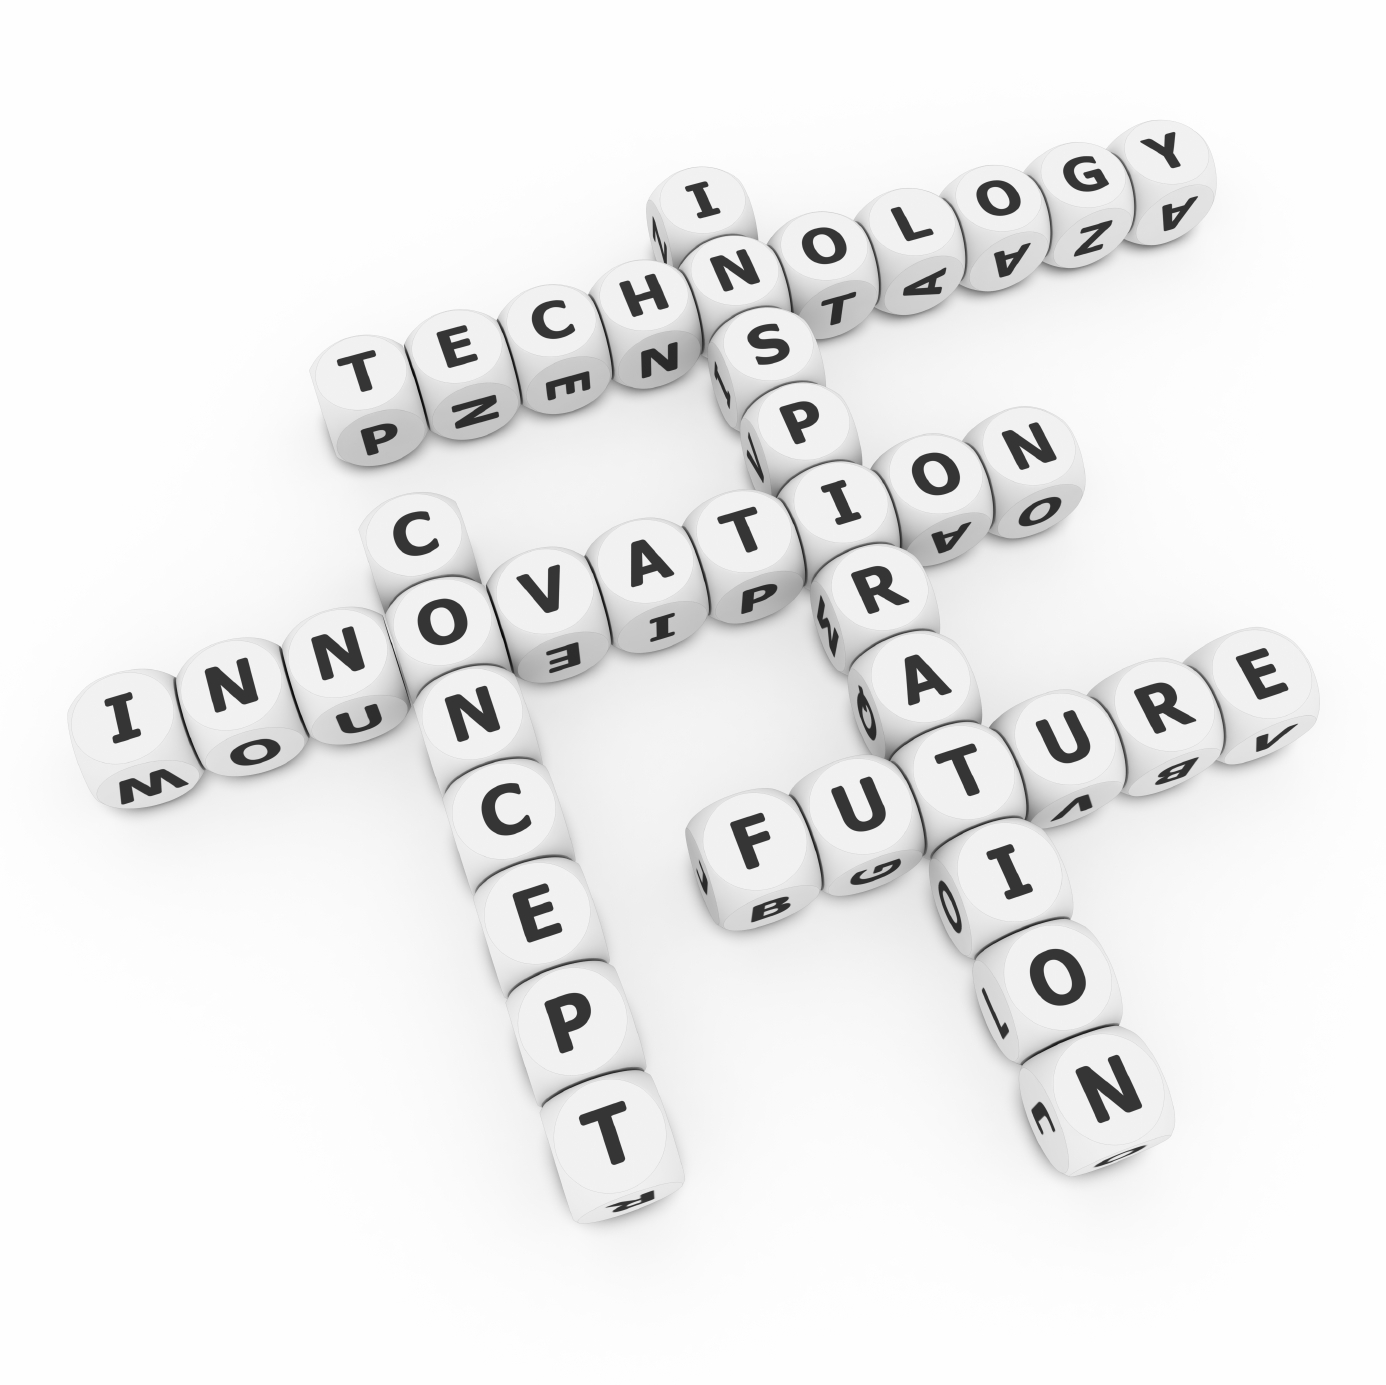 Innovative Solutions for Your Business